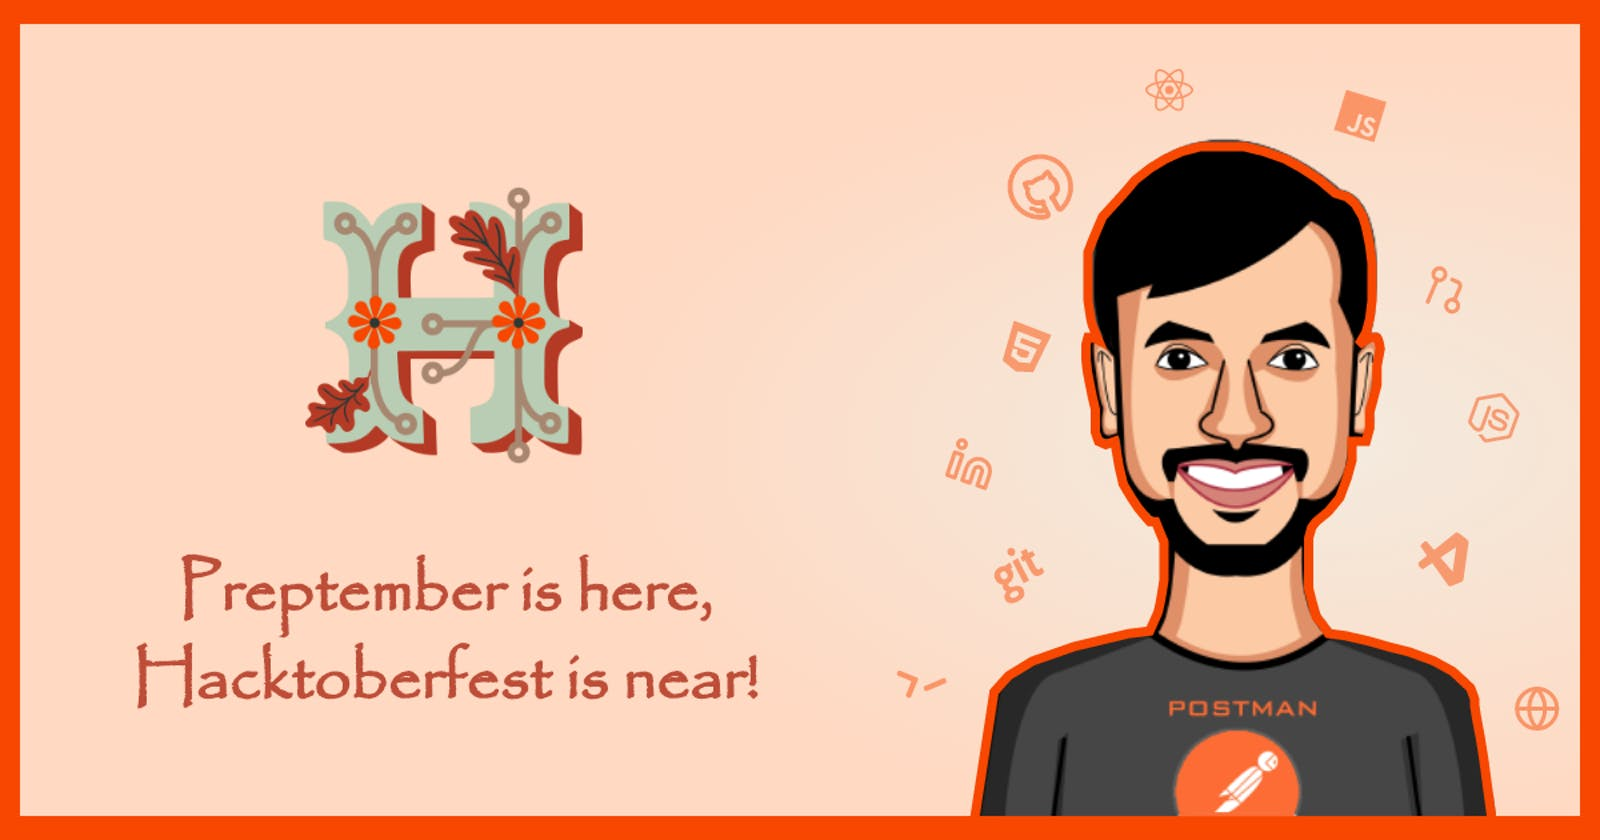 A curated list of beginner-friendly issues for Hacktoberfest 2021